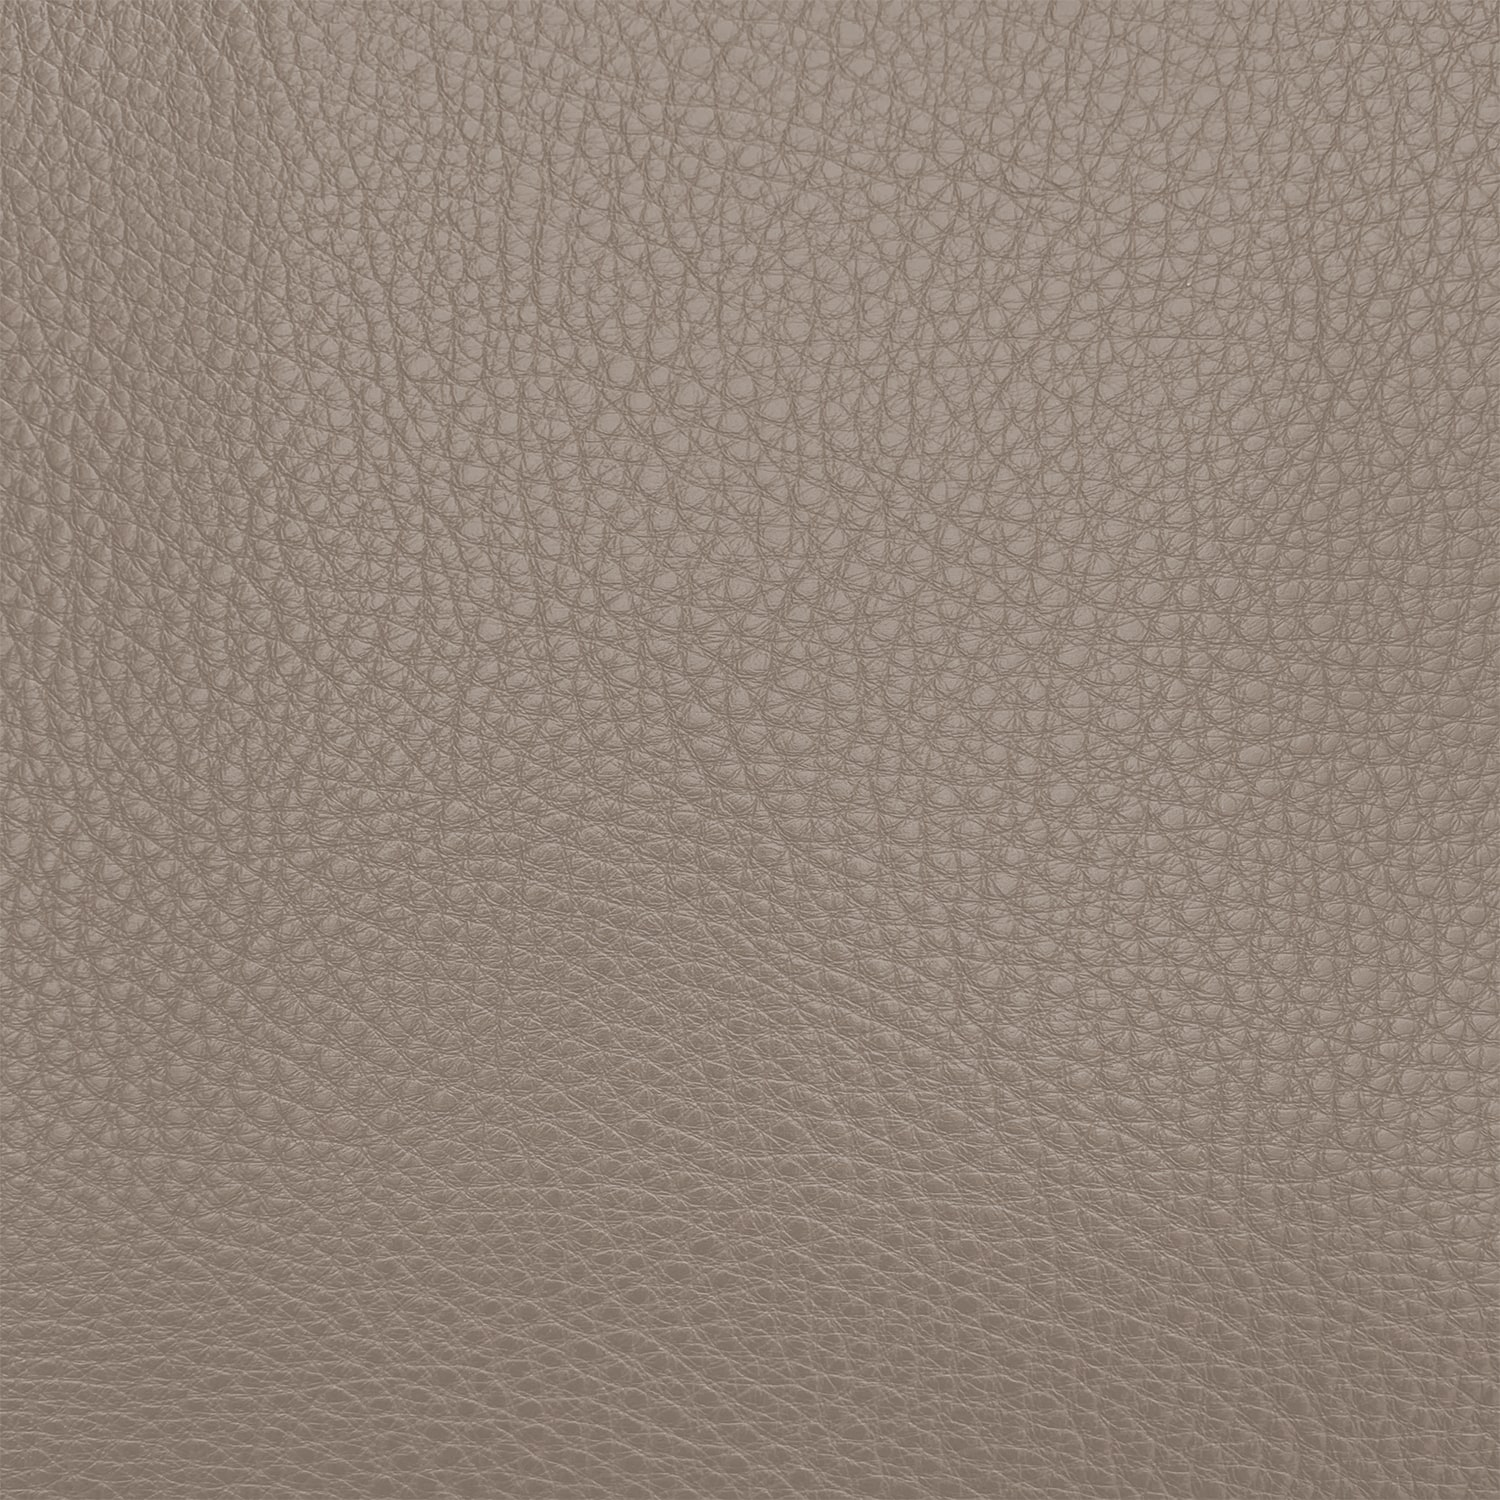 Bison: Champaign (grade F): #BIS1808<br>Thick, soft, even coloration; medium protection